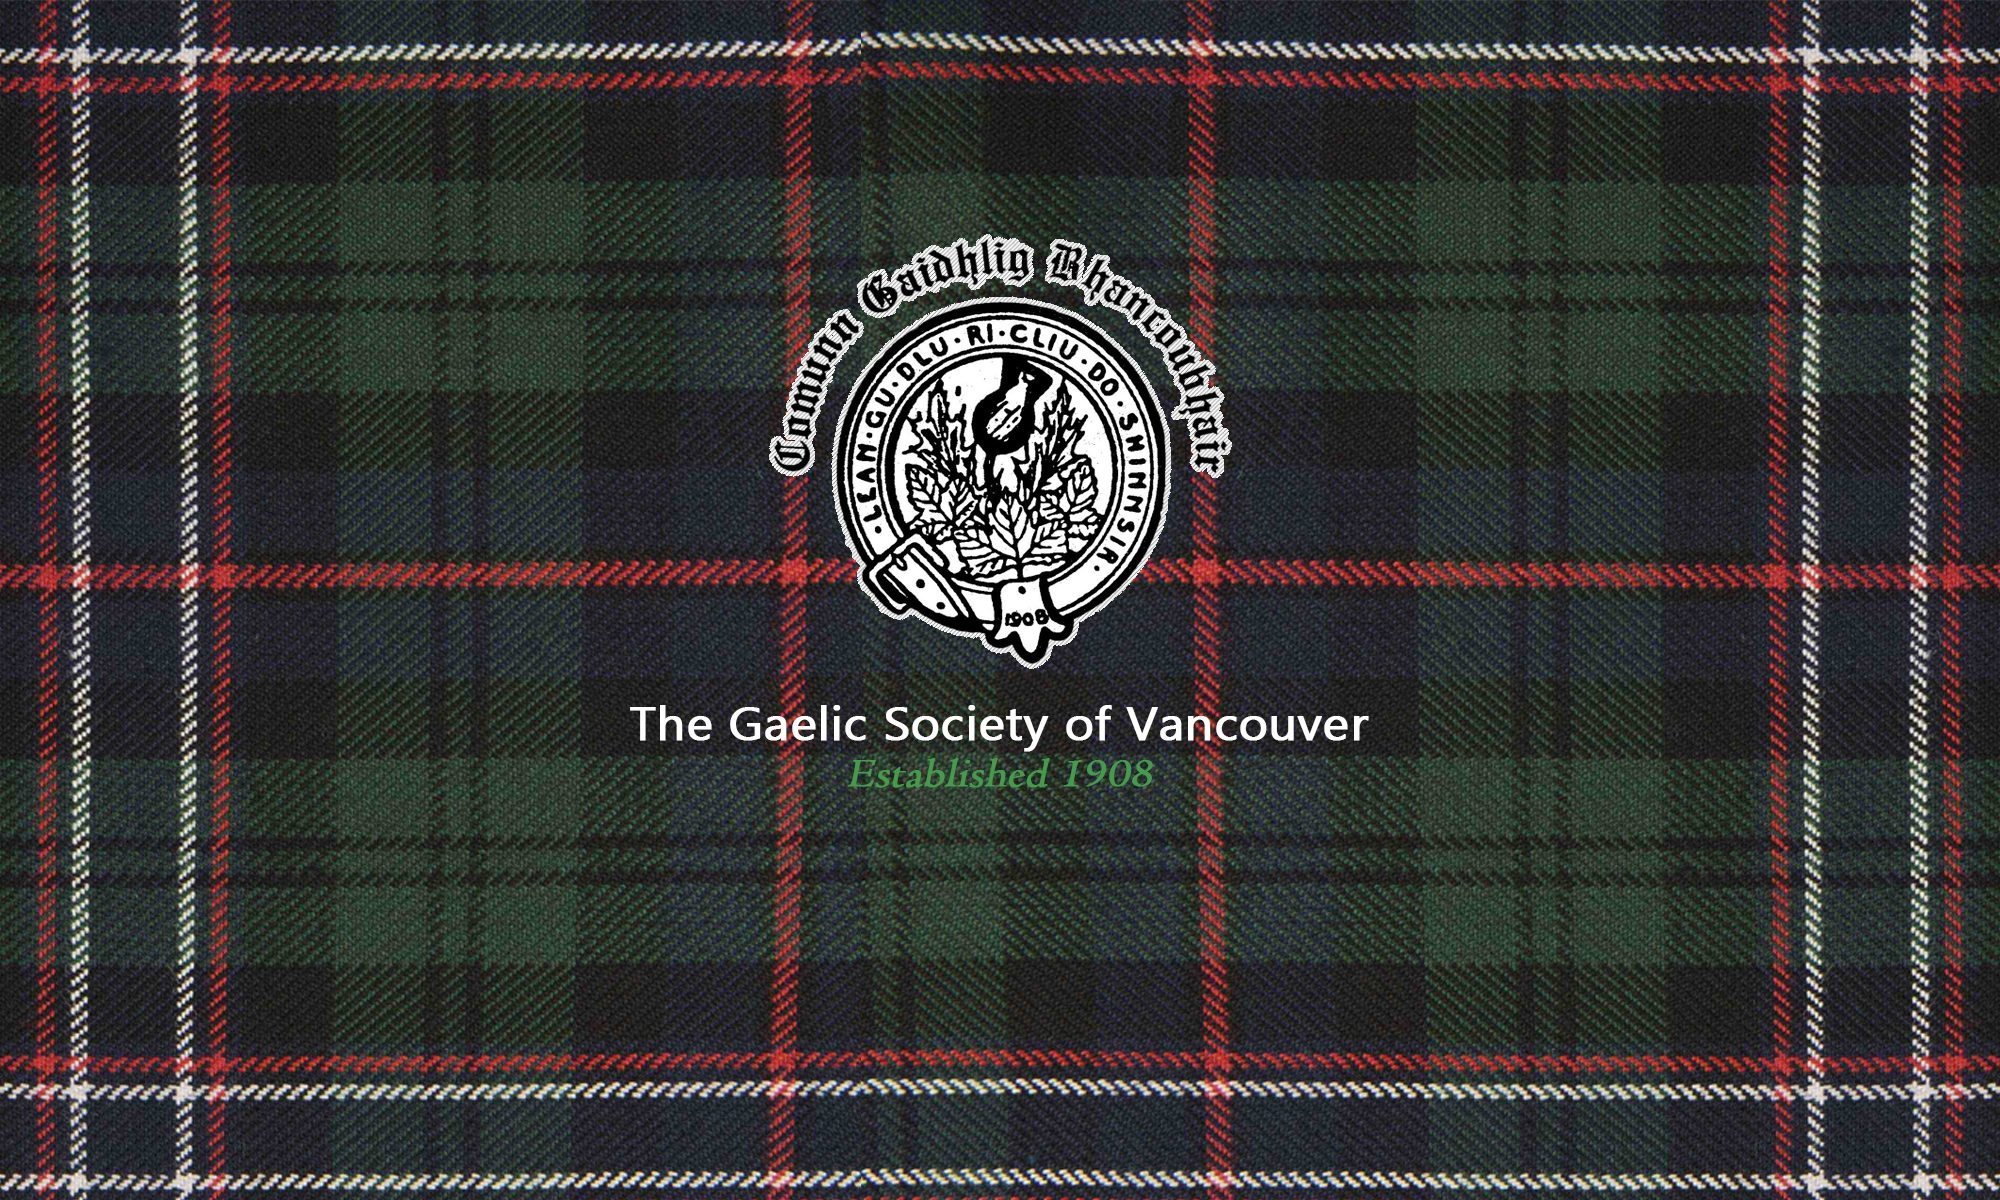 The Gaelic Society of Vancouver